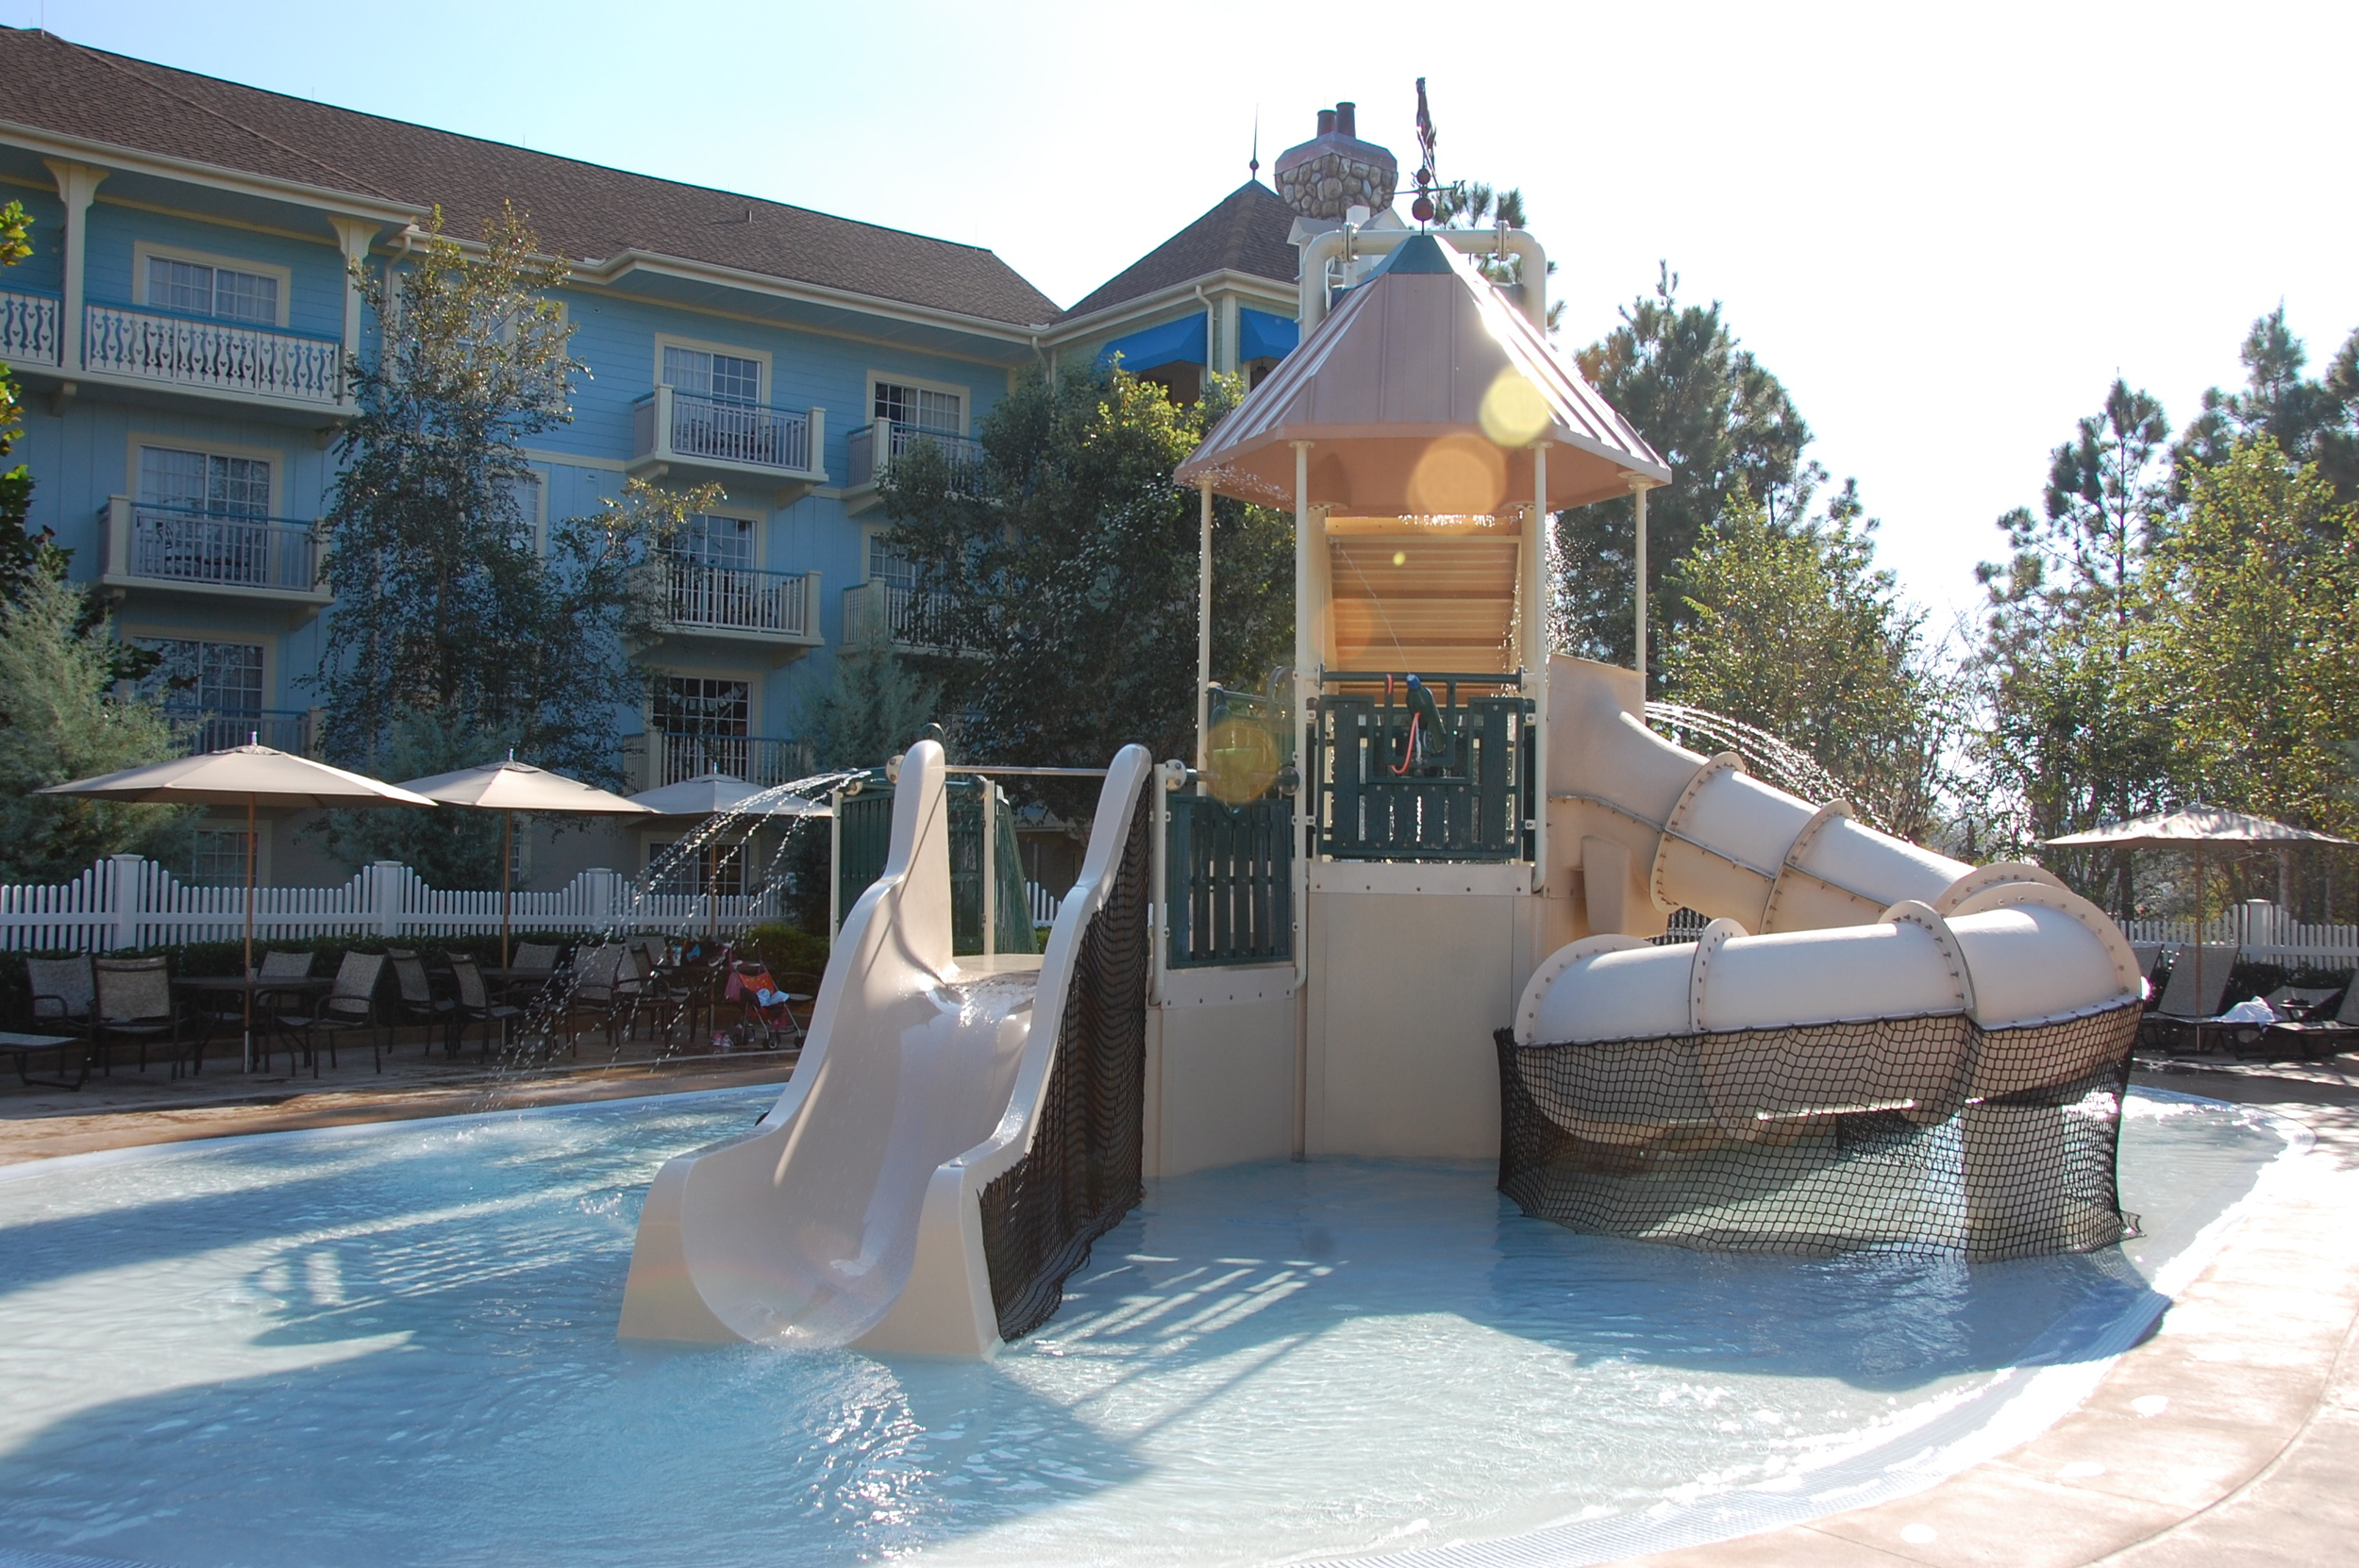 Paddock Water Play Area